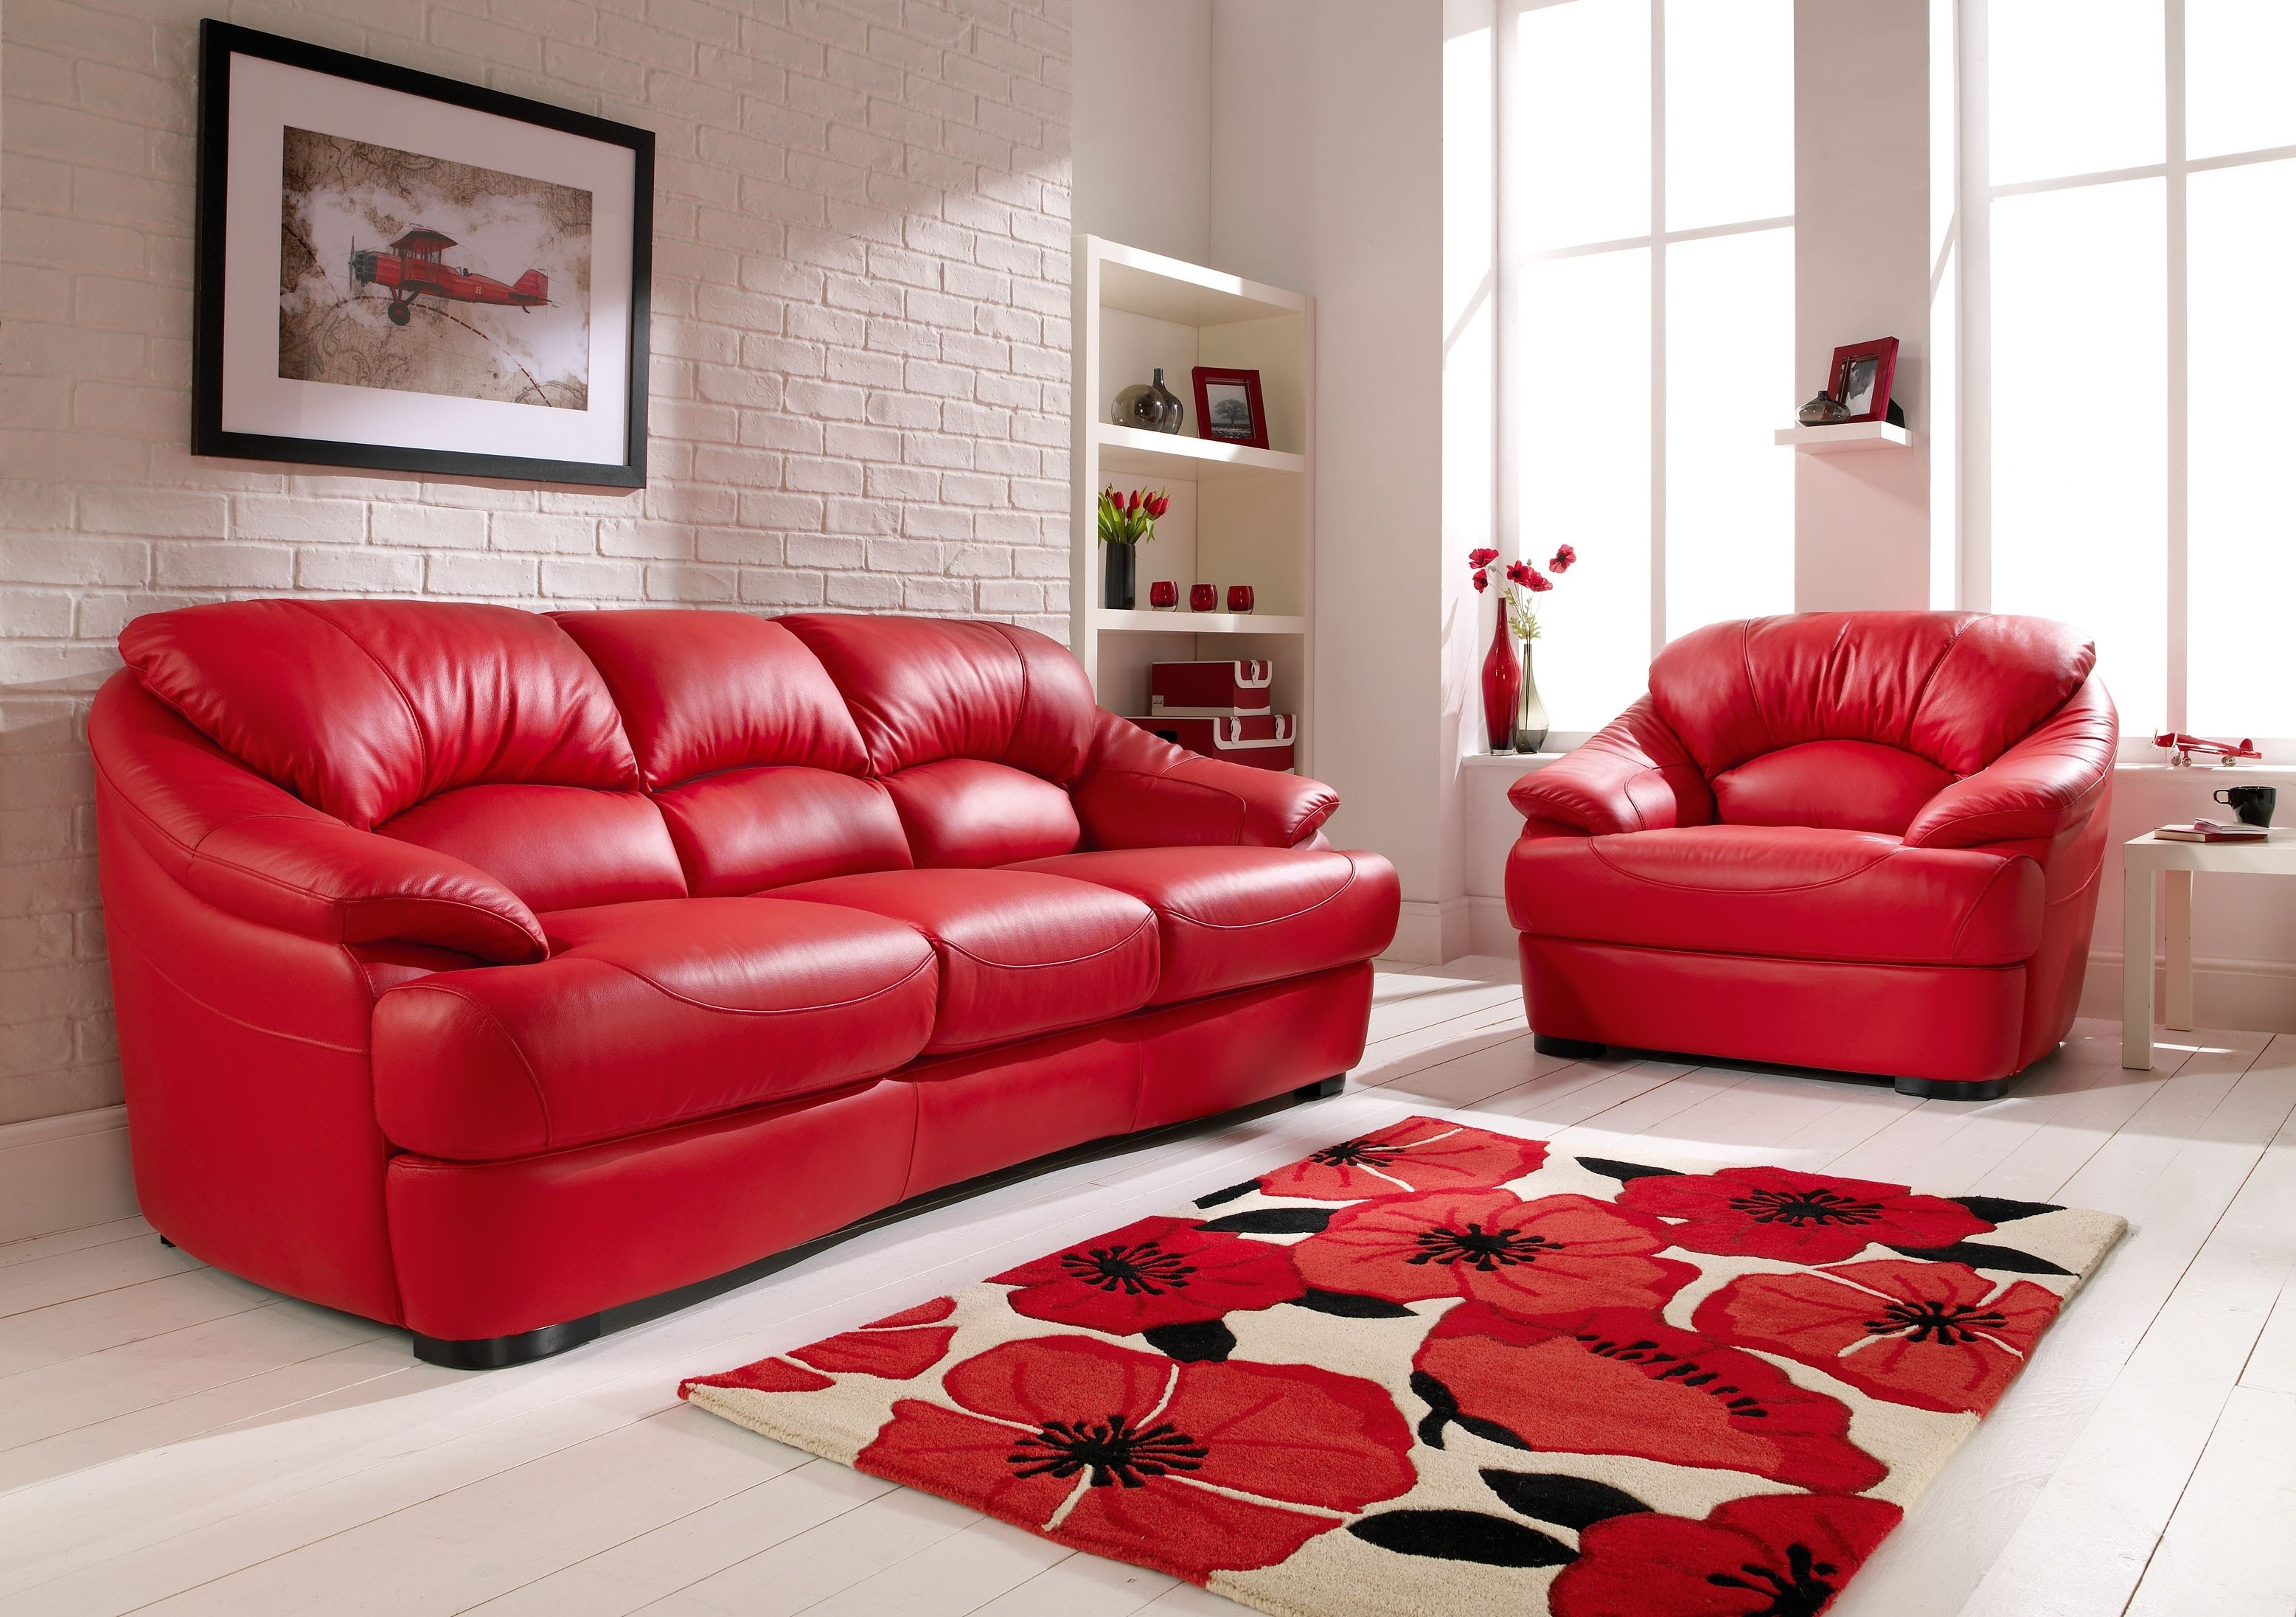 - Explore Gallery Of Red Leather Couches And Loveseats (Showing 13